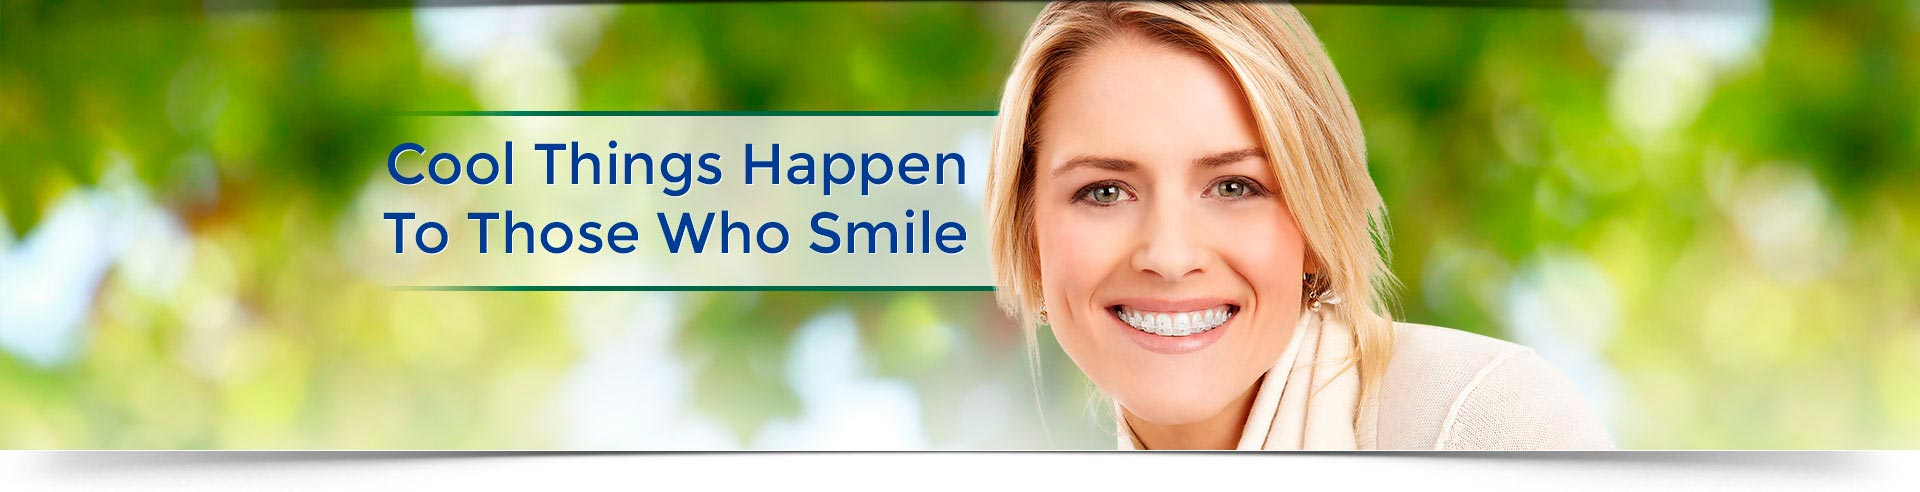 CoolSmiles-Orthodontics-Medford-Port-Jefferson-NY-Happy-Smiling-Woman-1920